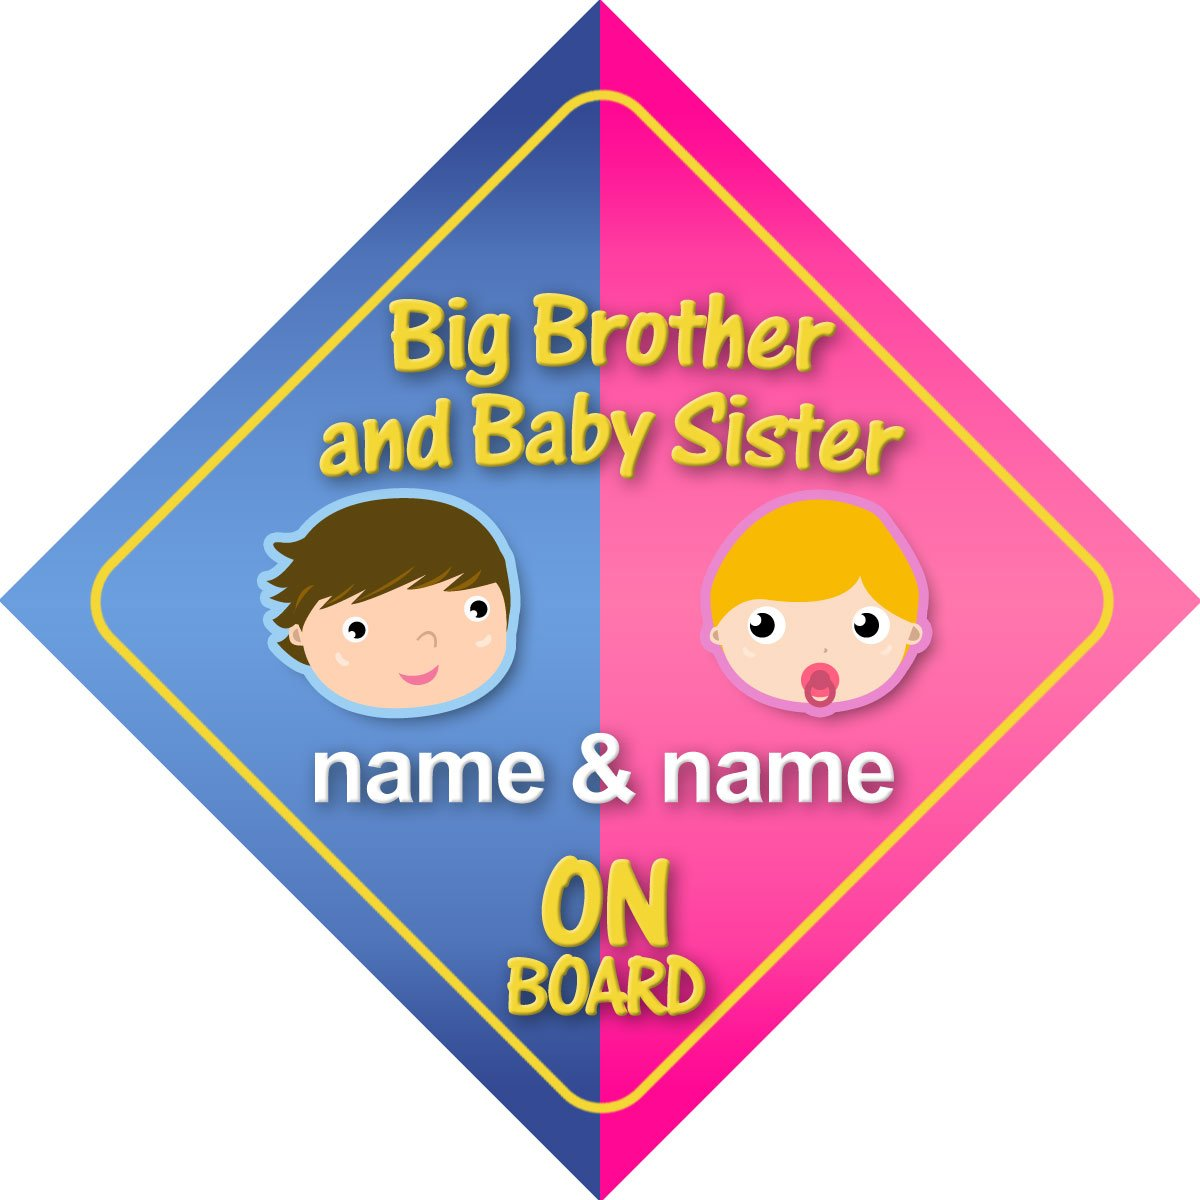 Baby Boy Riley on board novelty car sign gift//present for new child//newborn baby